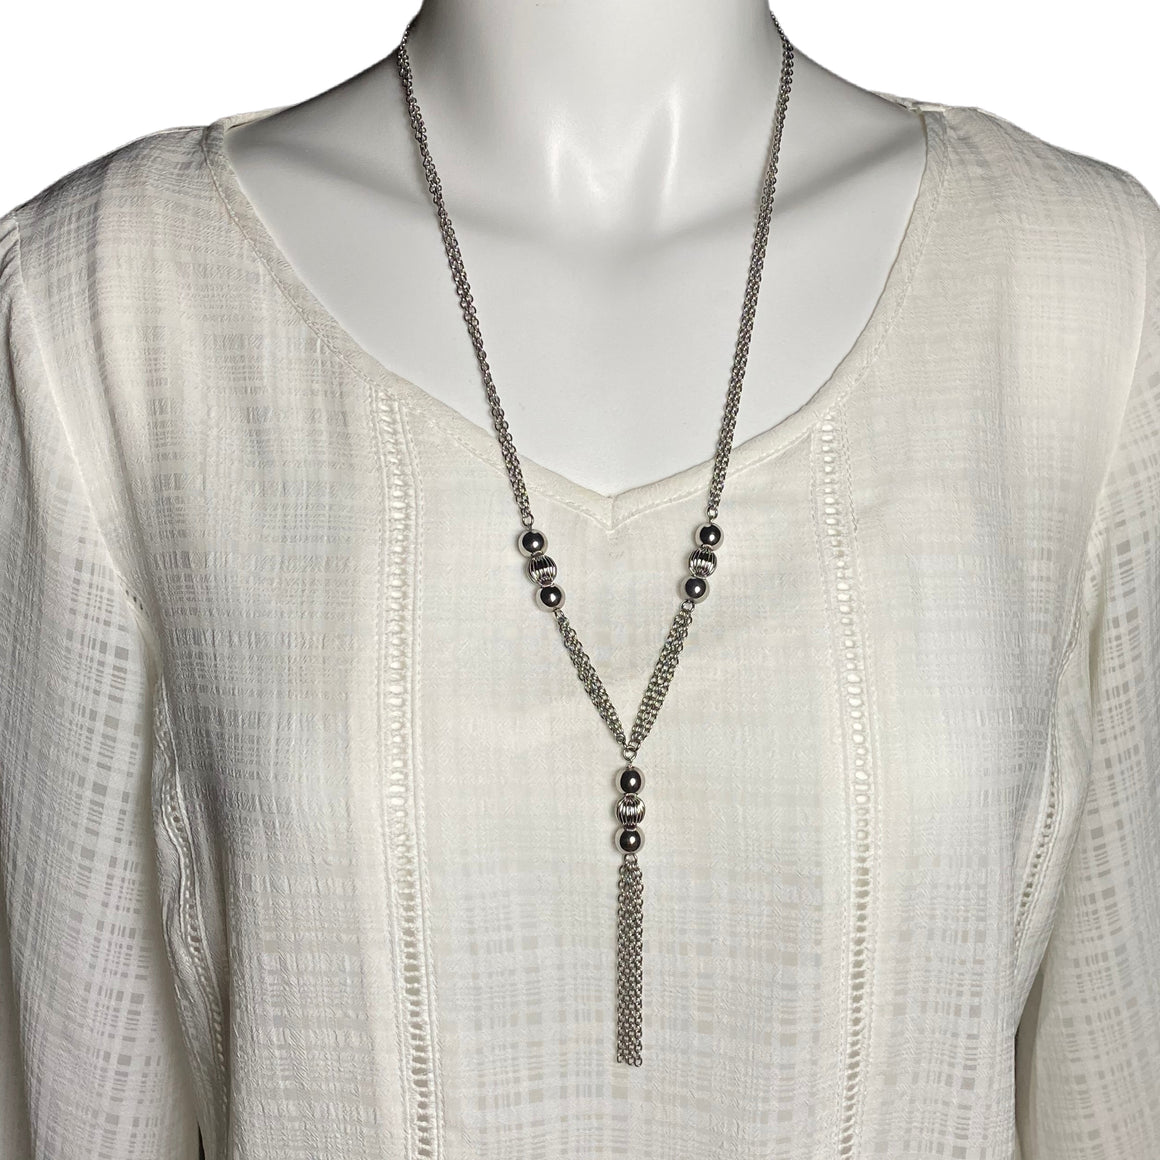 "Stainless Steel Long Tassel Necklace 29"" with Shiny Ball Accents"